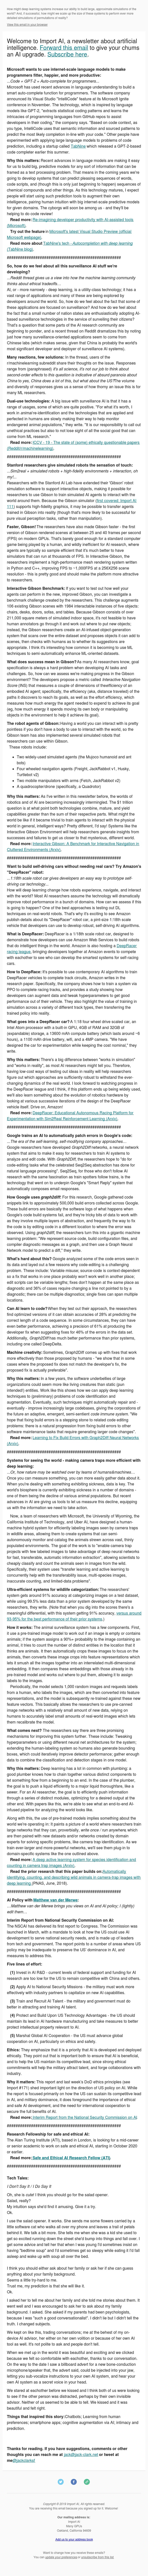 Import AI 172: Amazon makes a 1:18th scale robocar; Microsoft uses GPT-2 to make auto-suggest for coders; and Google trains AI to fix code errors